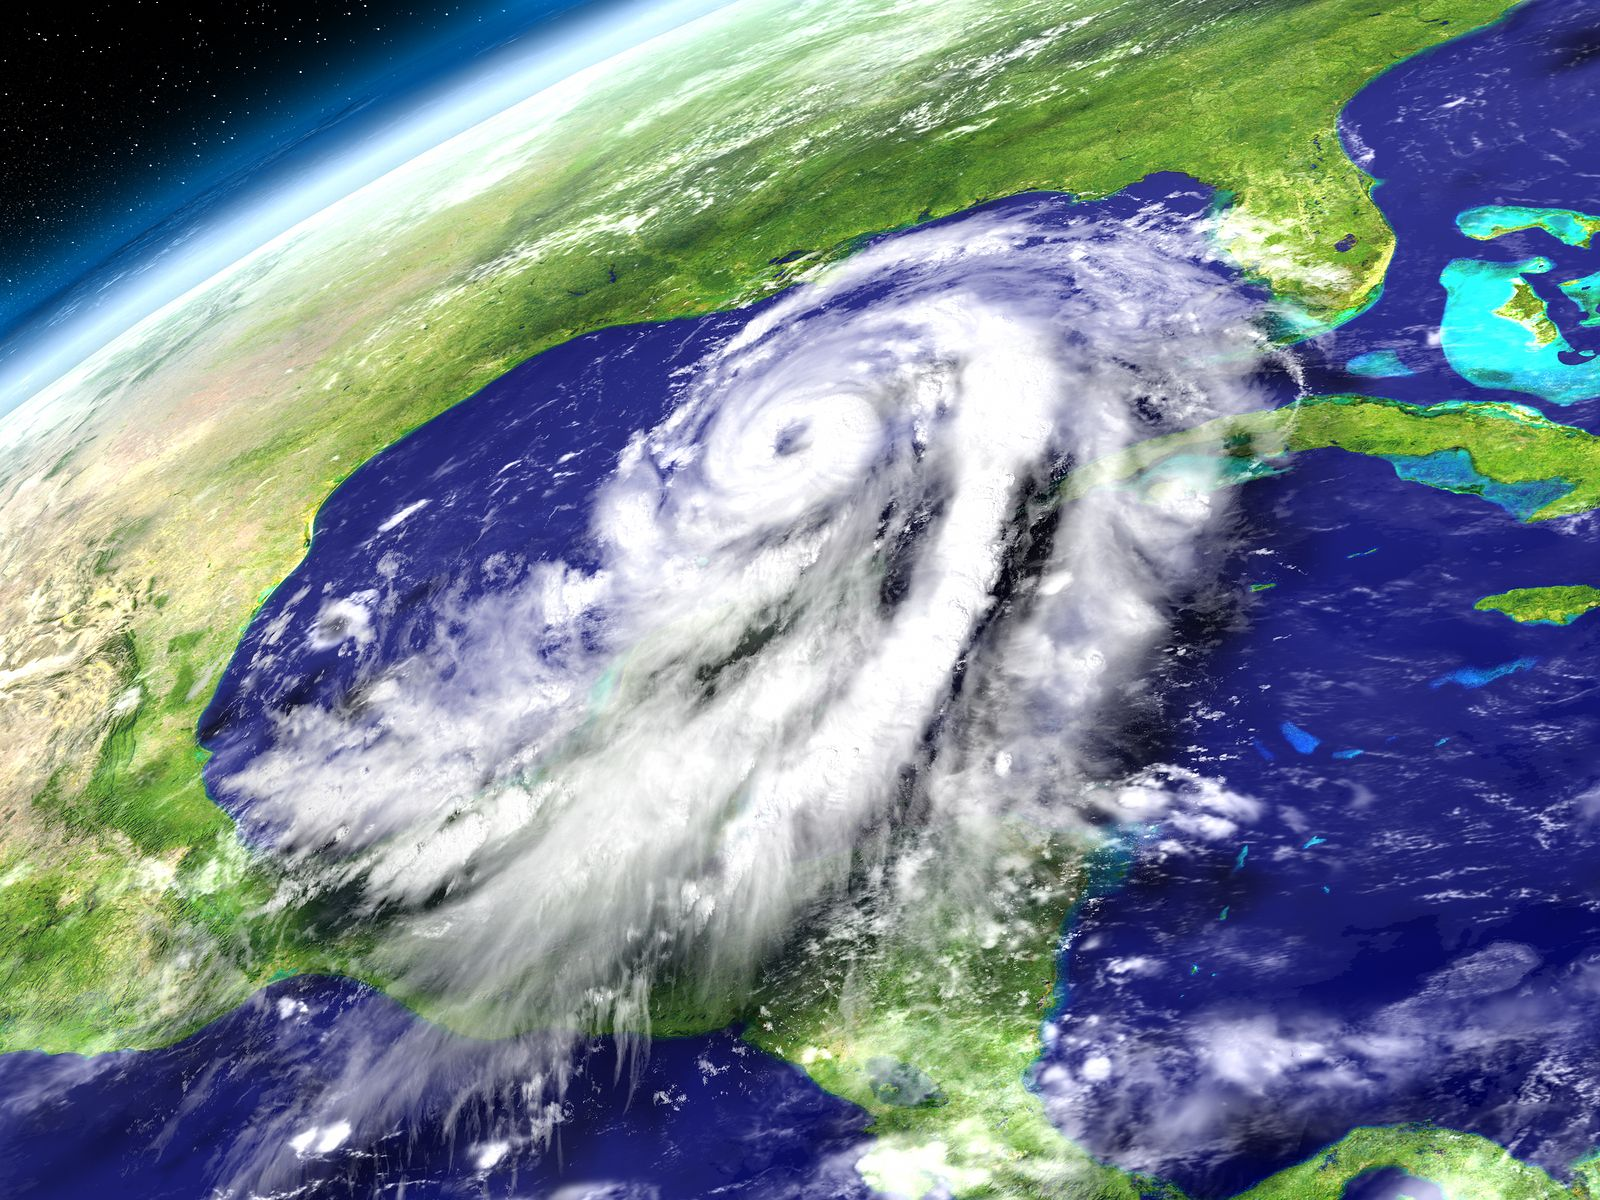 Fema Awards South Florida Water Management District More Than 2 1 Million For Hurricane Irma Expenses Florida Water Hurricane Season National Hurricane Center